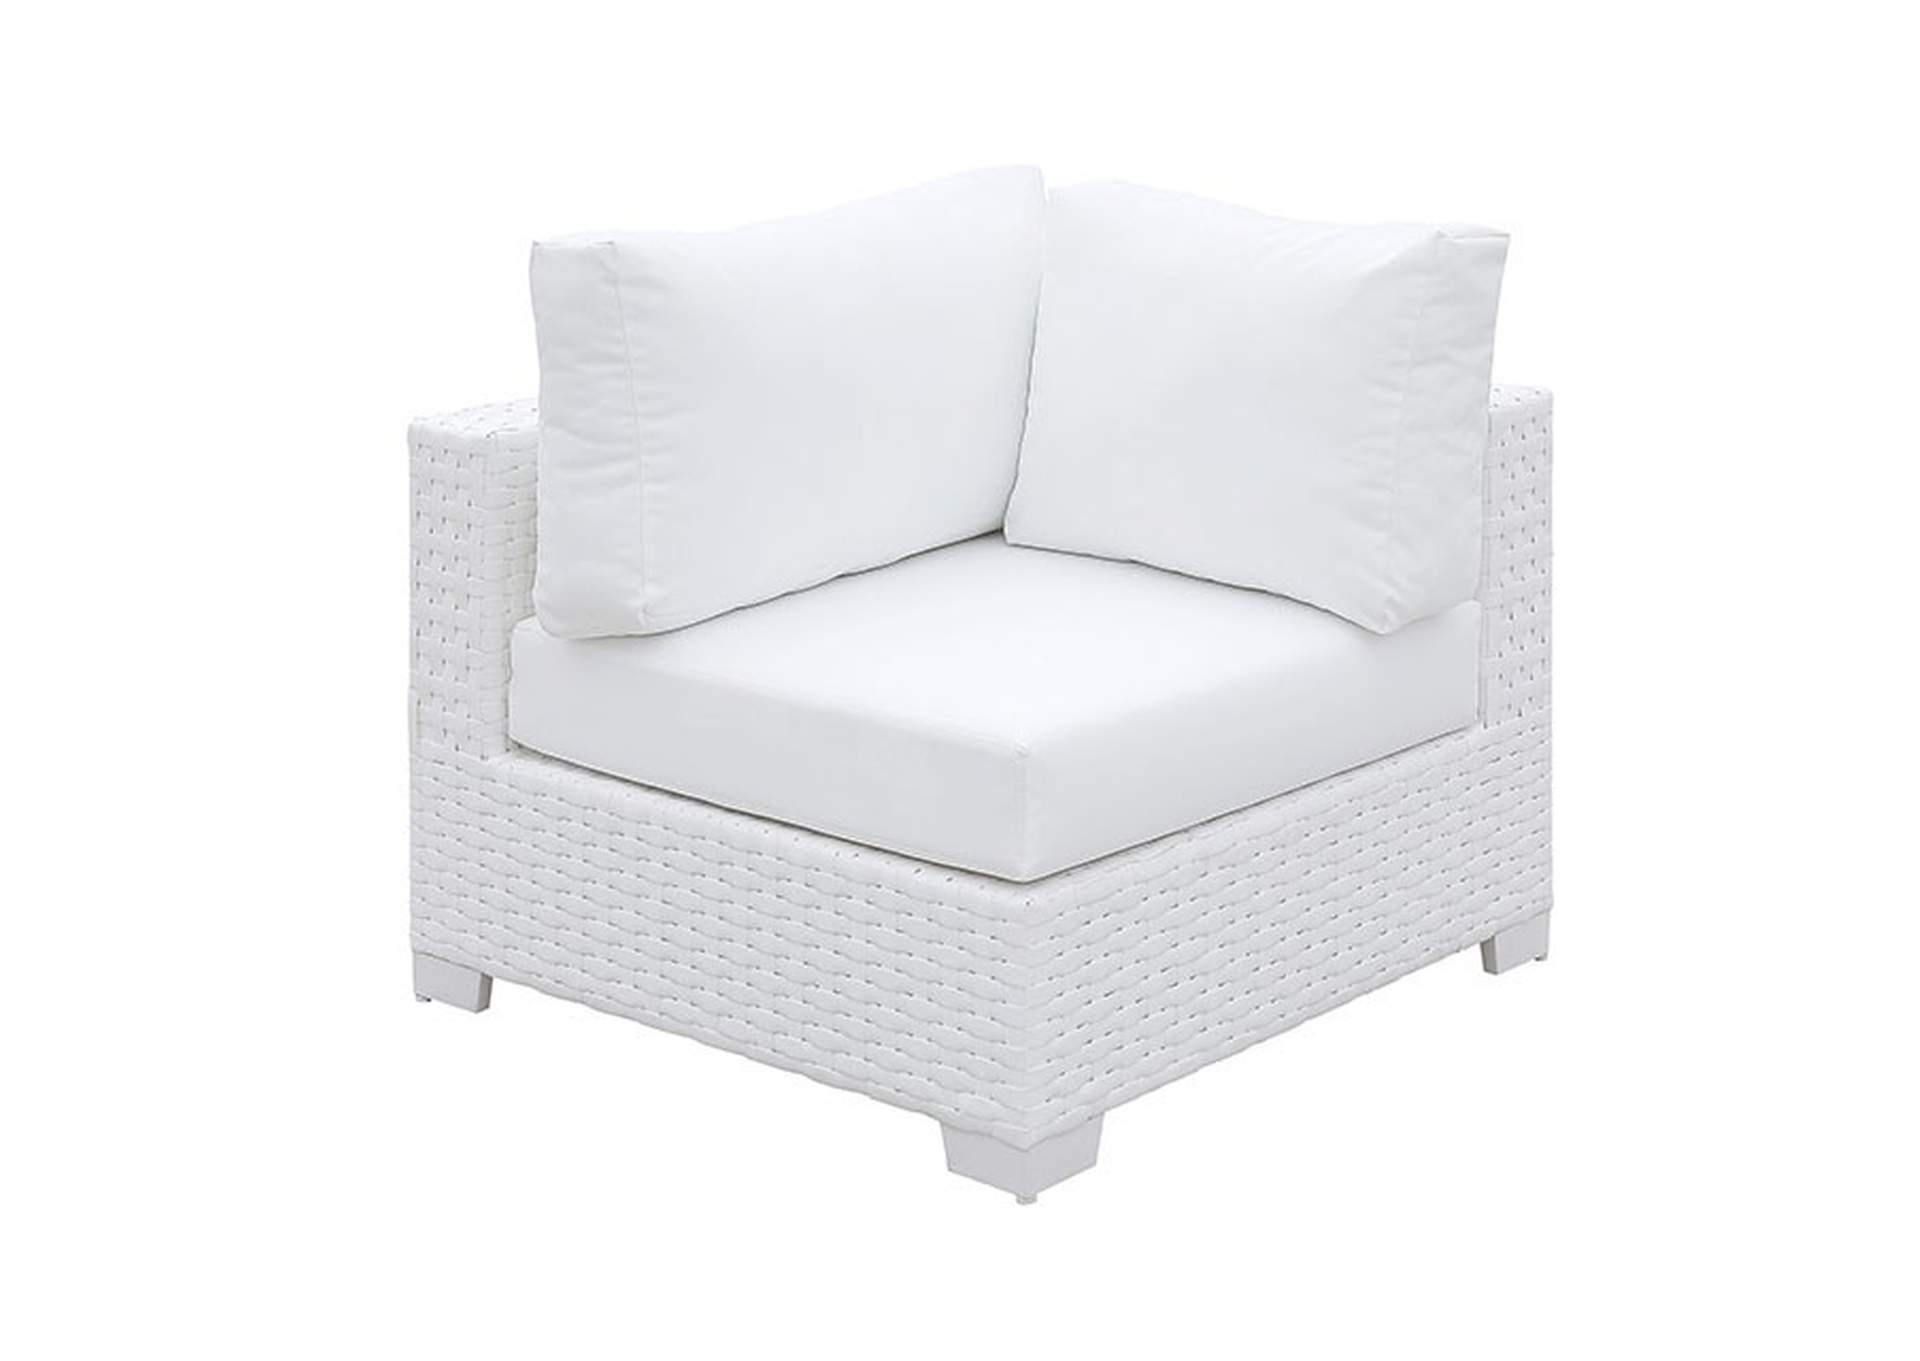 Somani White Wicker/White Cushion Armless Chair,Furniture of America